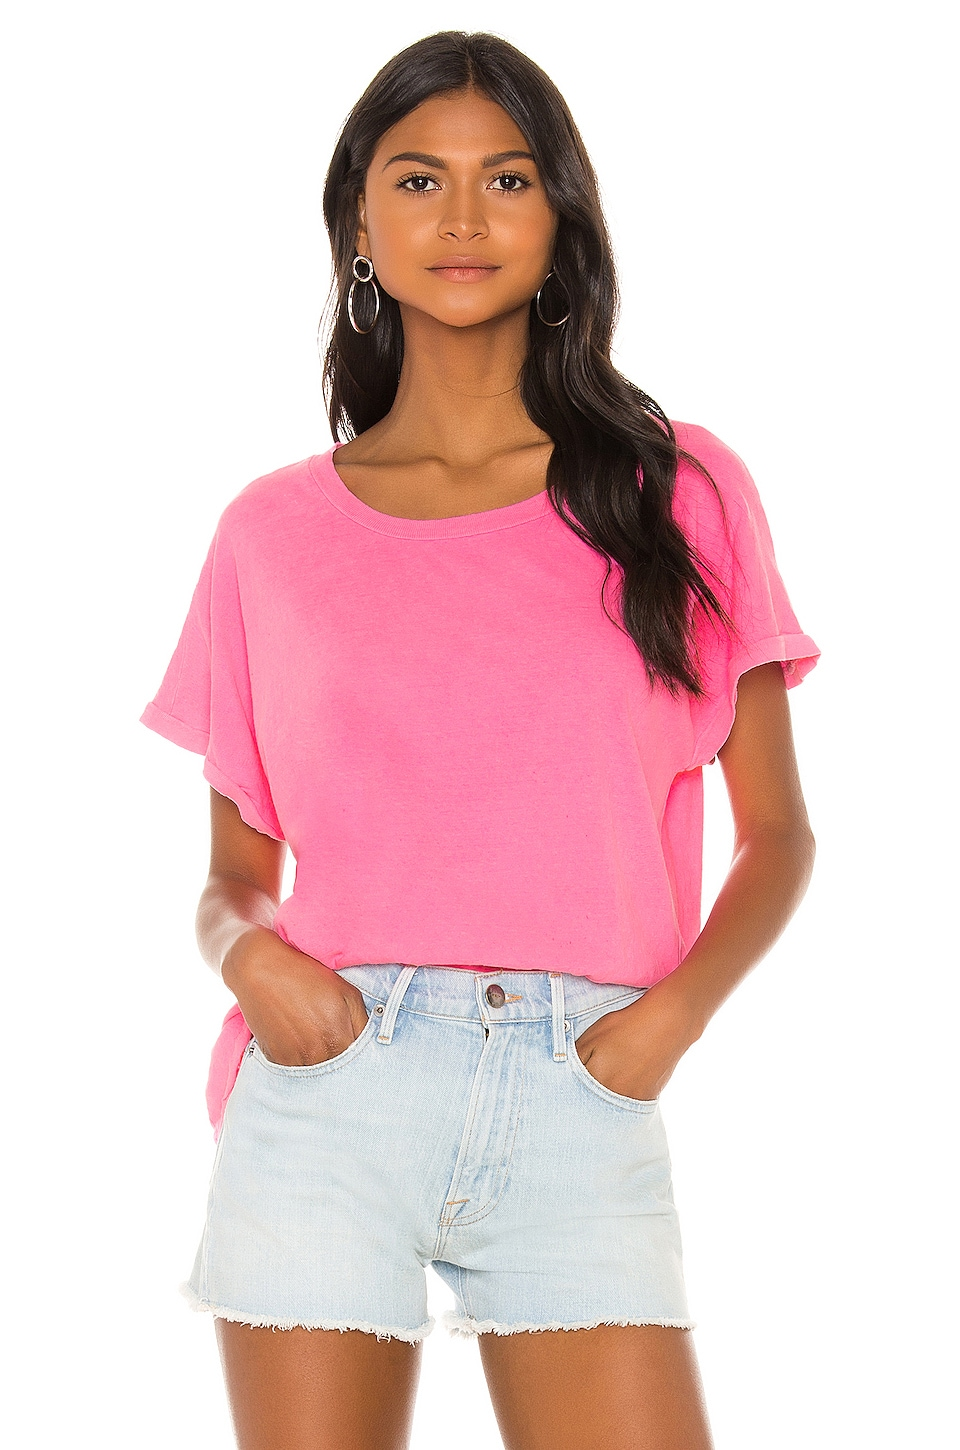 SUNDRY Square Tee in Pigment Neon Pink